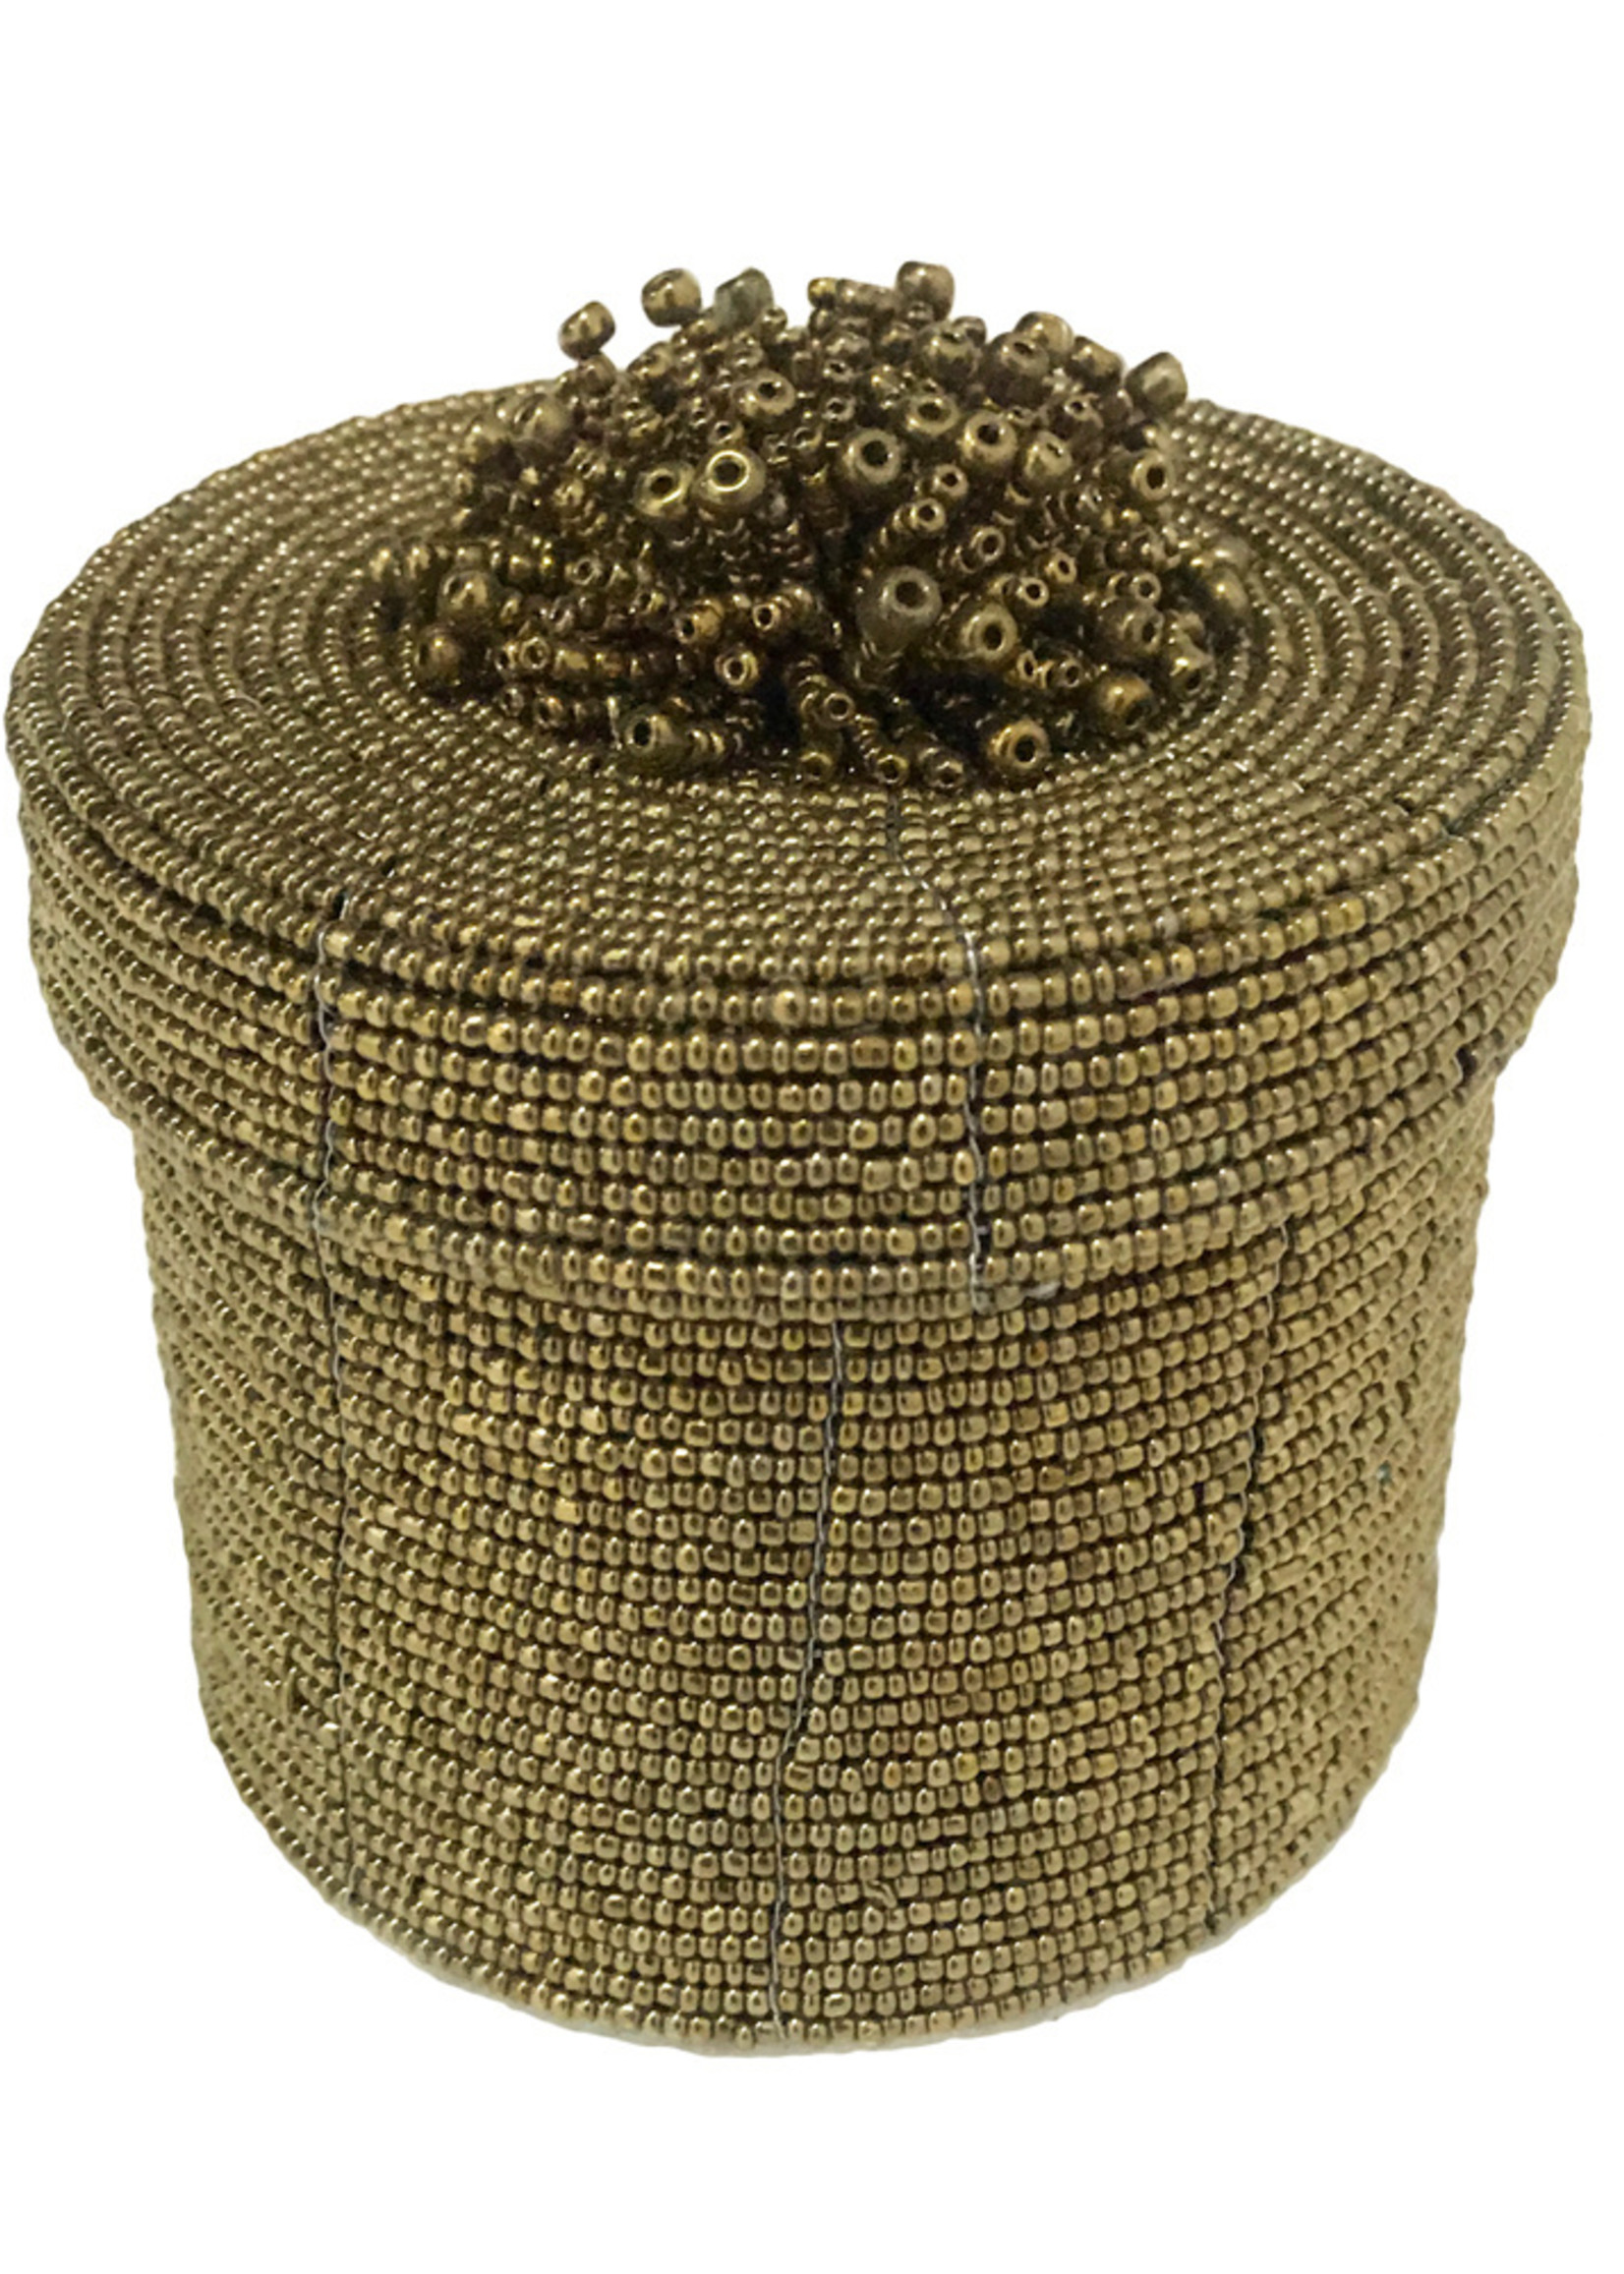 The Beaded Gift Box - Gold